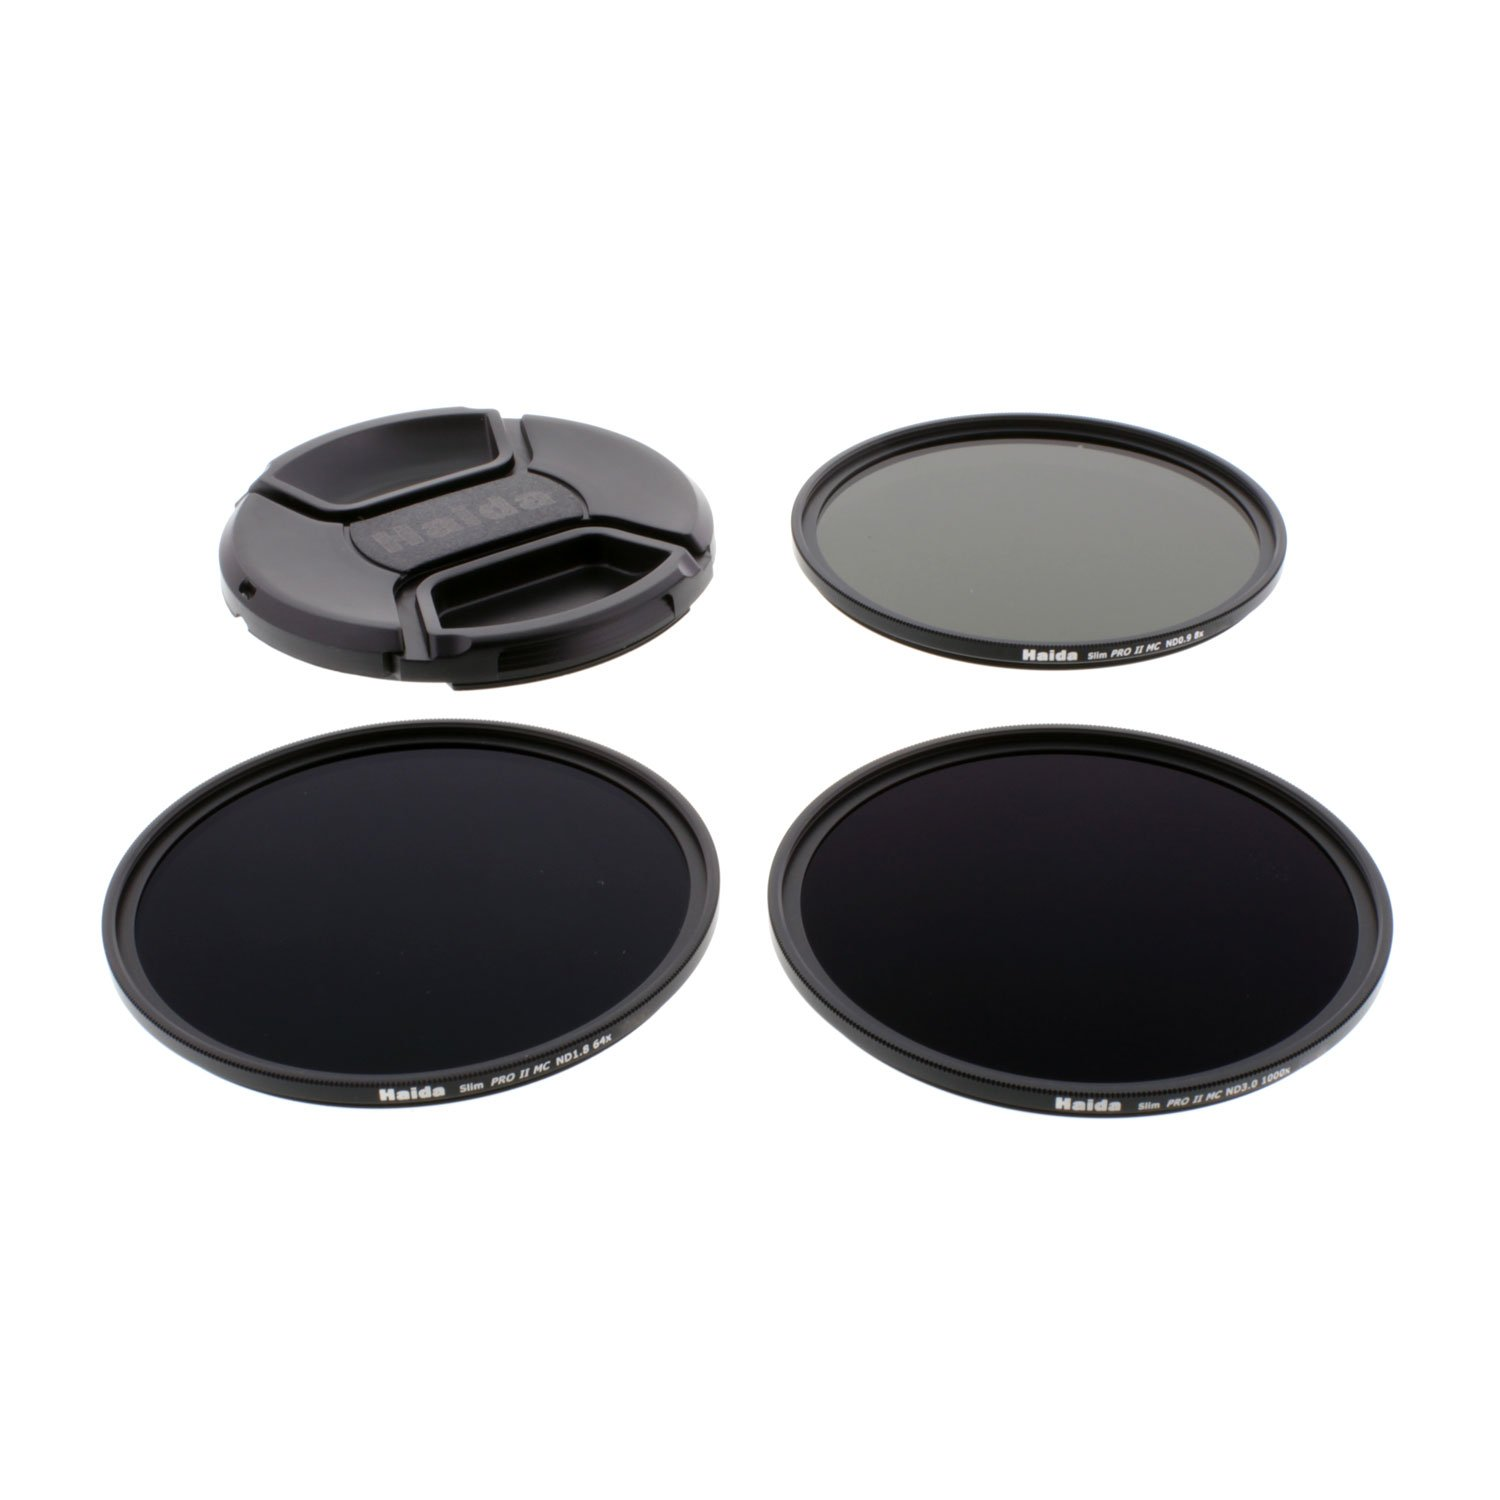 Haida 72mm Slim PROII Neutral Density Multi-Coated ND Filter Kit 8x 64x 1000x and Lens Cap by Haida